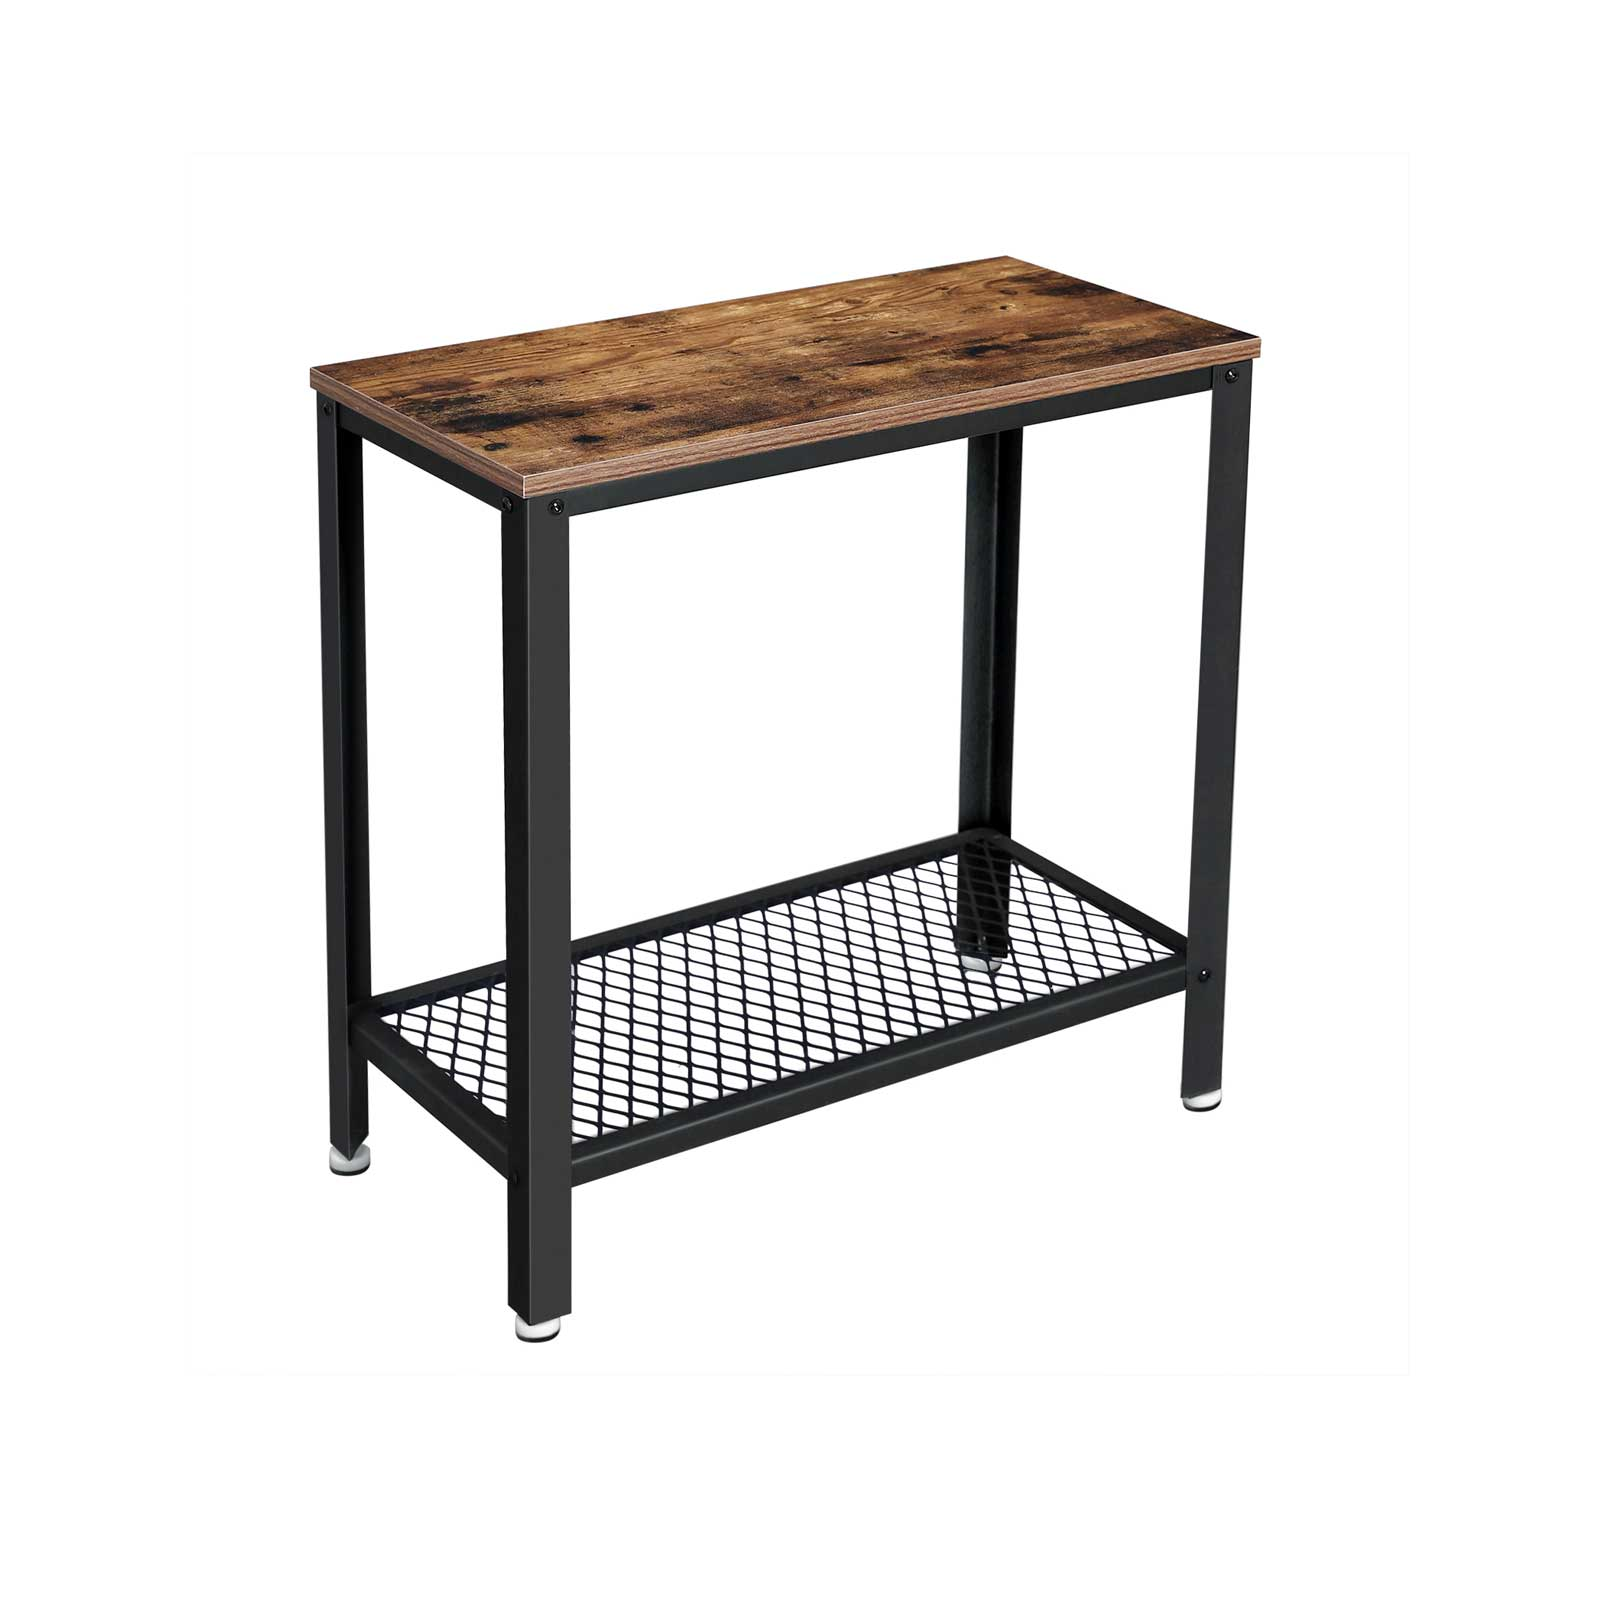 Table console grille industriel